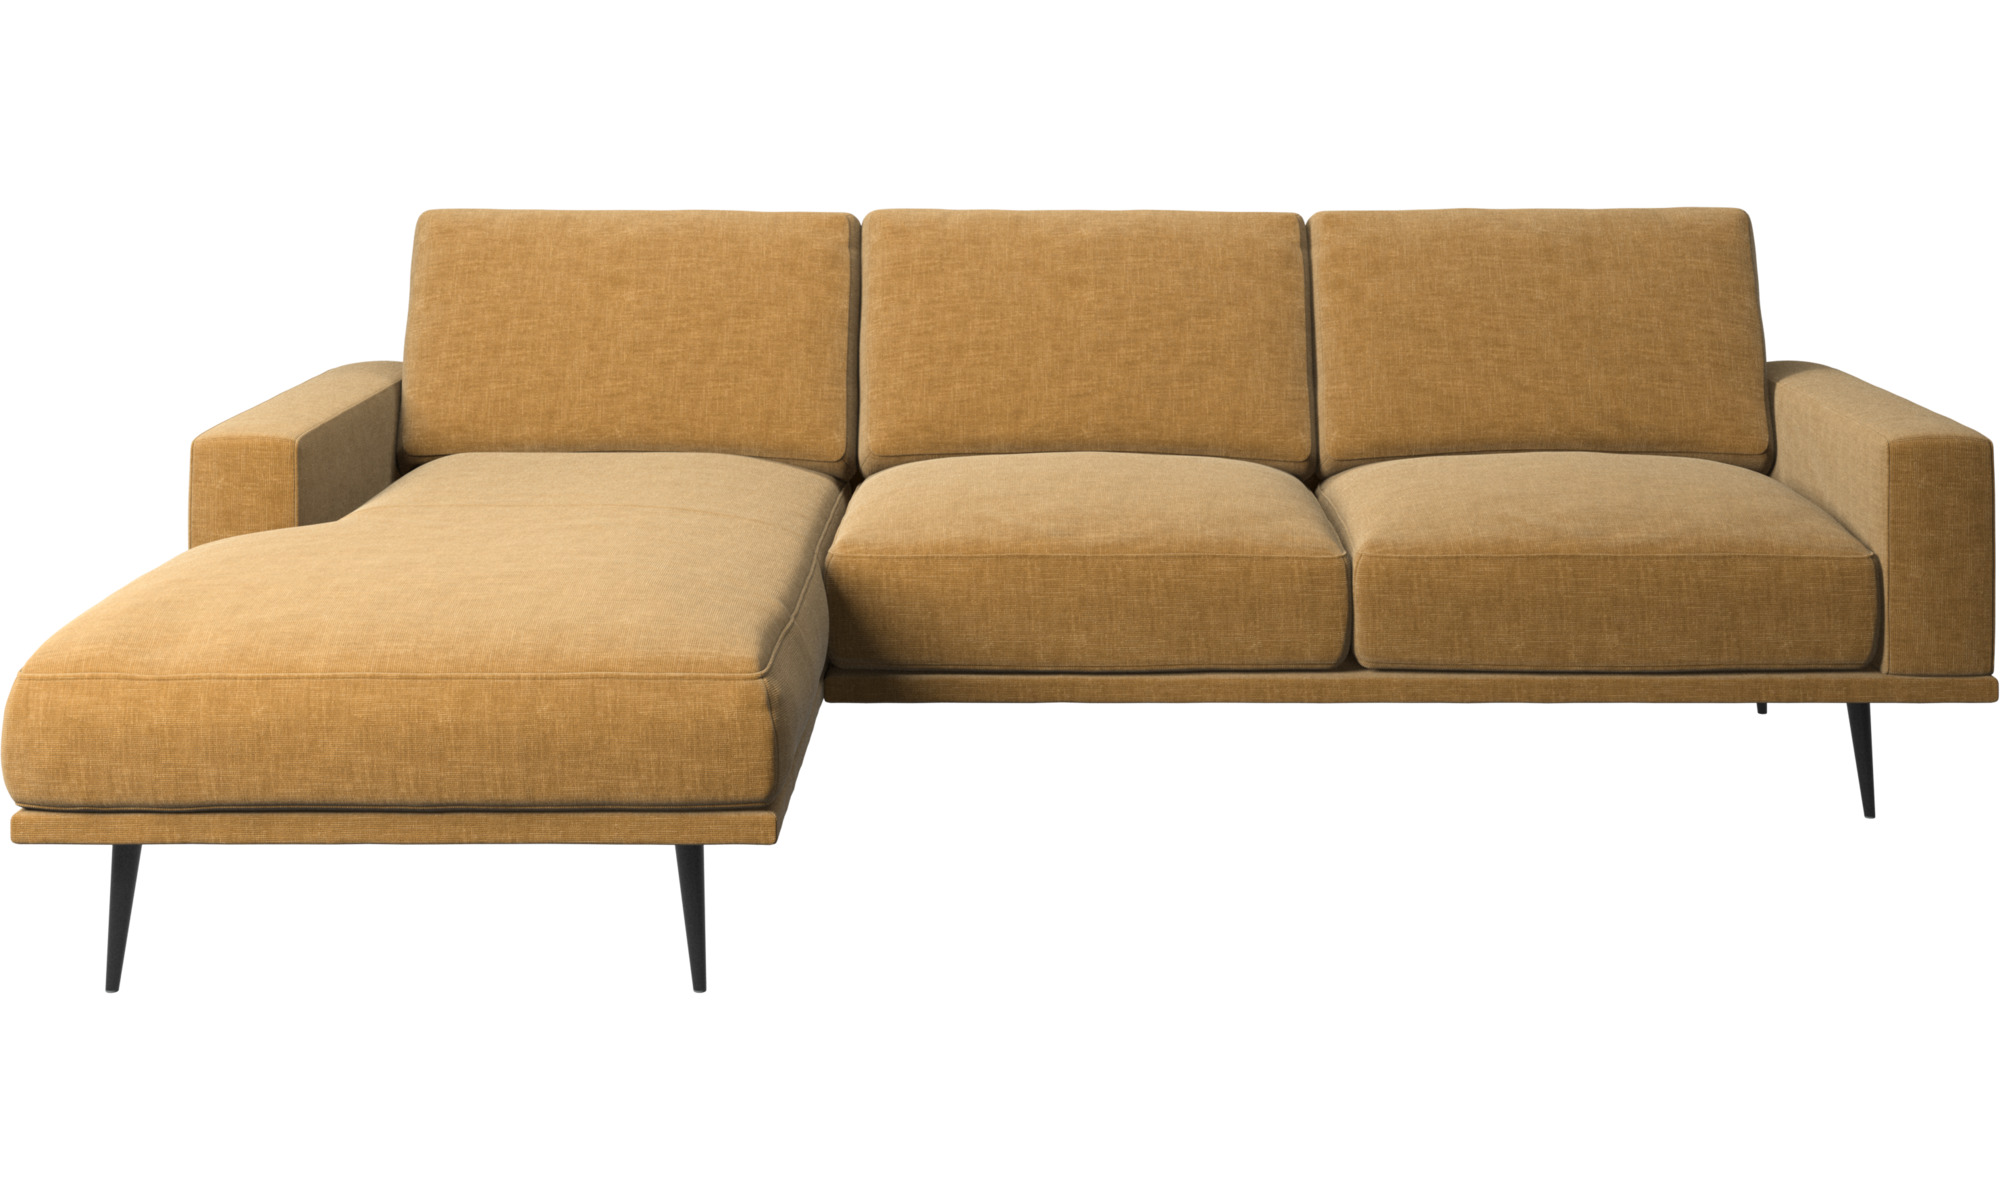 Chaise Lounge Sofas Carlton Sofa With Resting Unit Beige Fabric